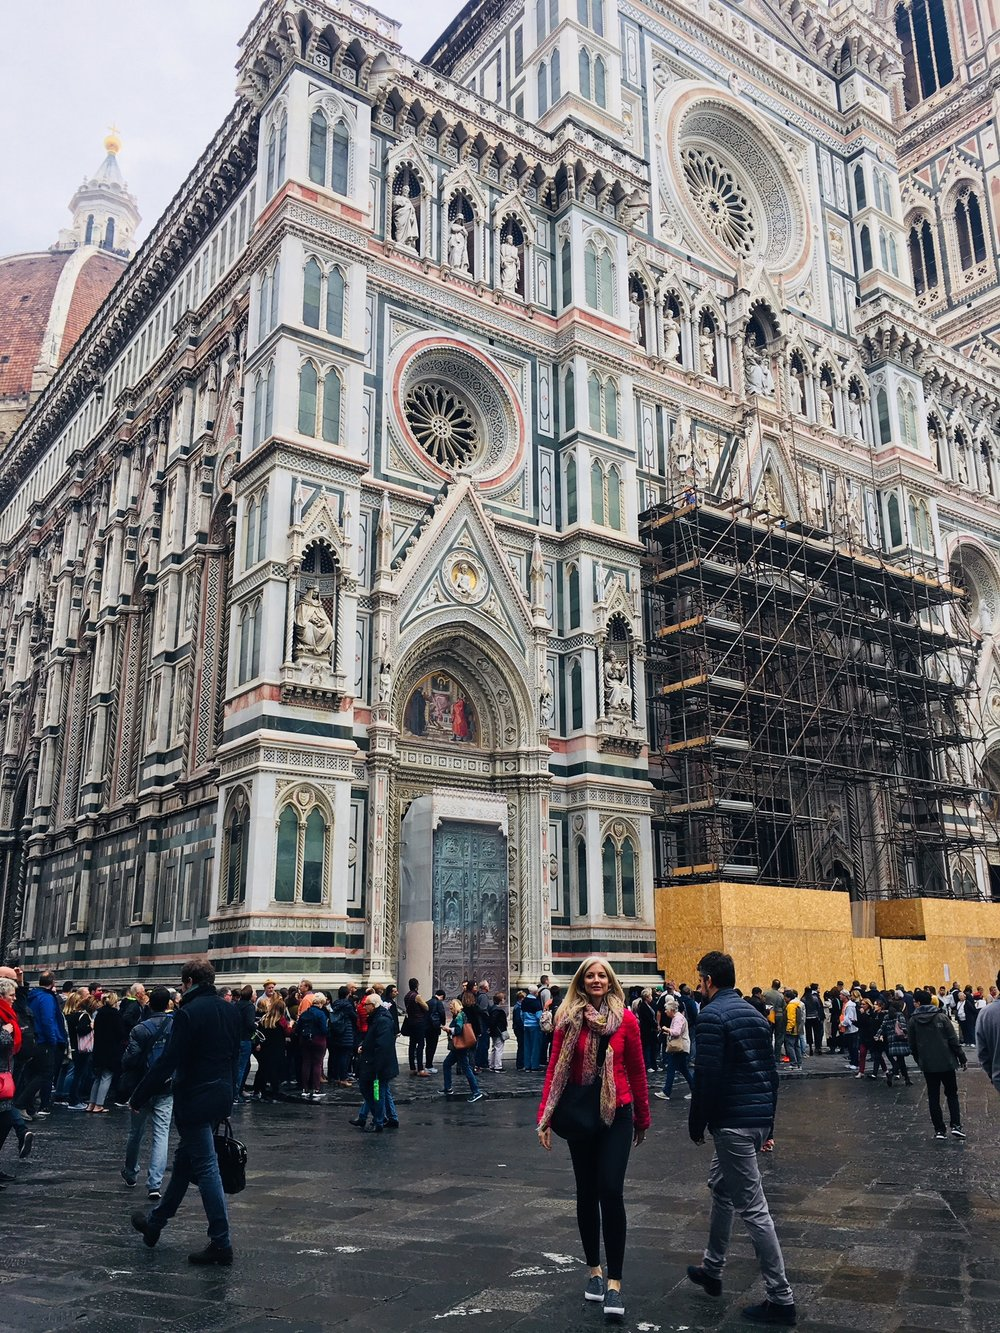 Florence's Piazza del Duomo